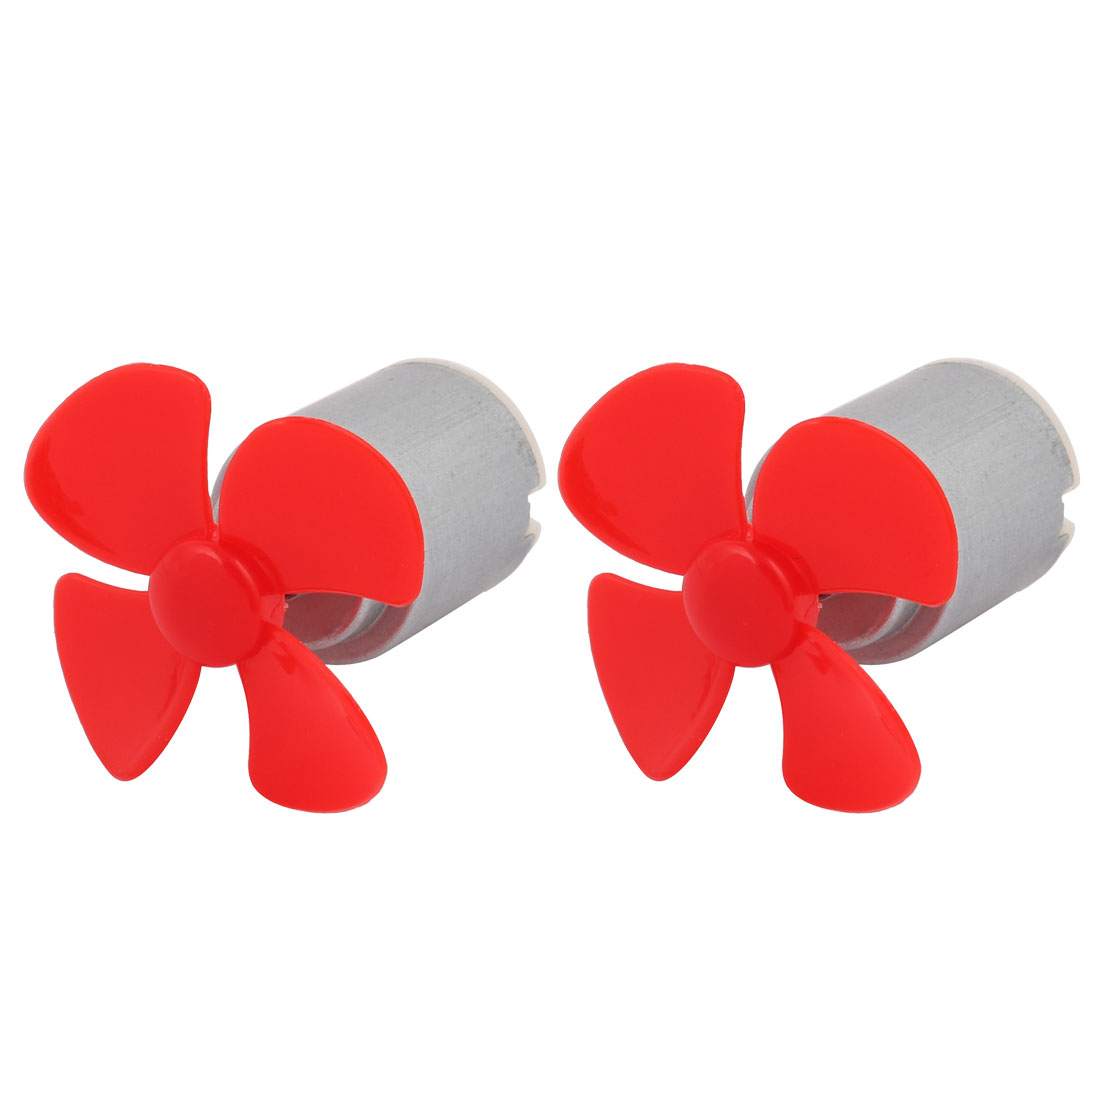 2pcs DC 3V 0.13A 20000RPM Strong Force Motor 4 Vanes 40mm Red Propeller for RC Aircraft